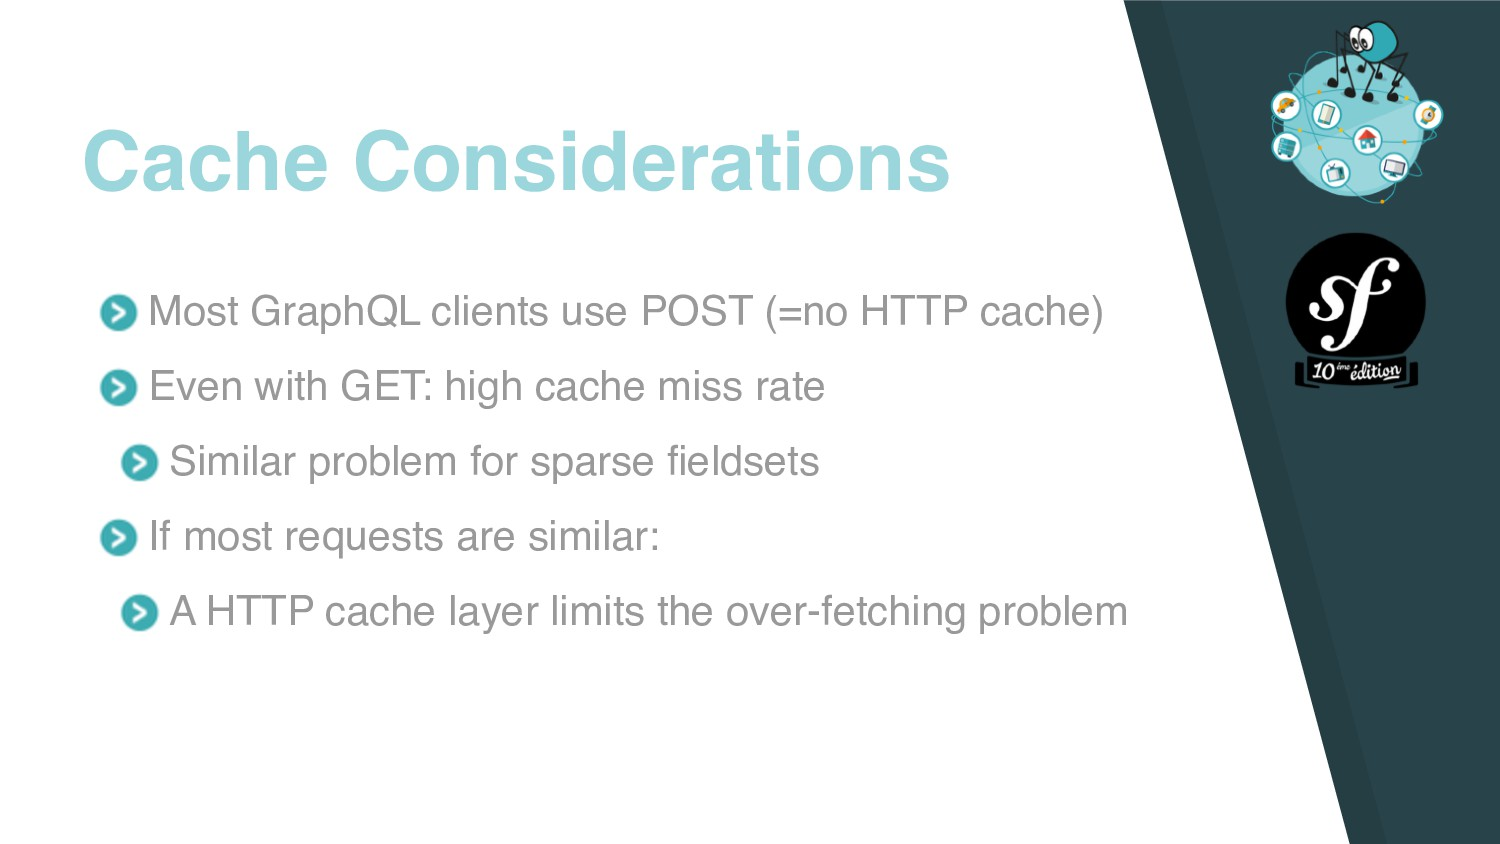 Most GraphQL clients use POST (=no HTTP cache) ...